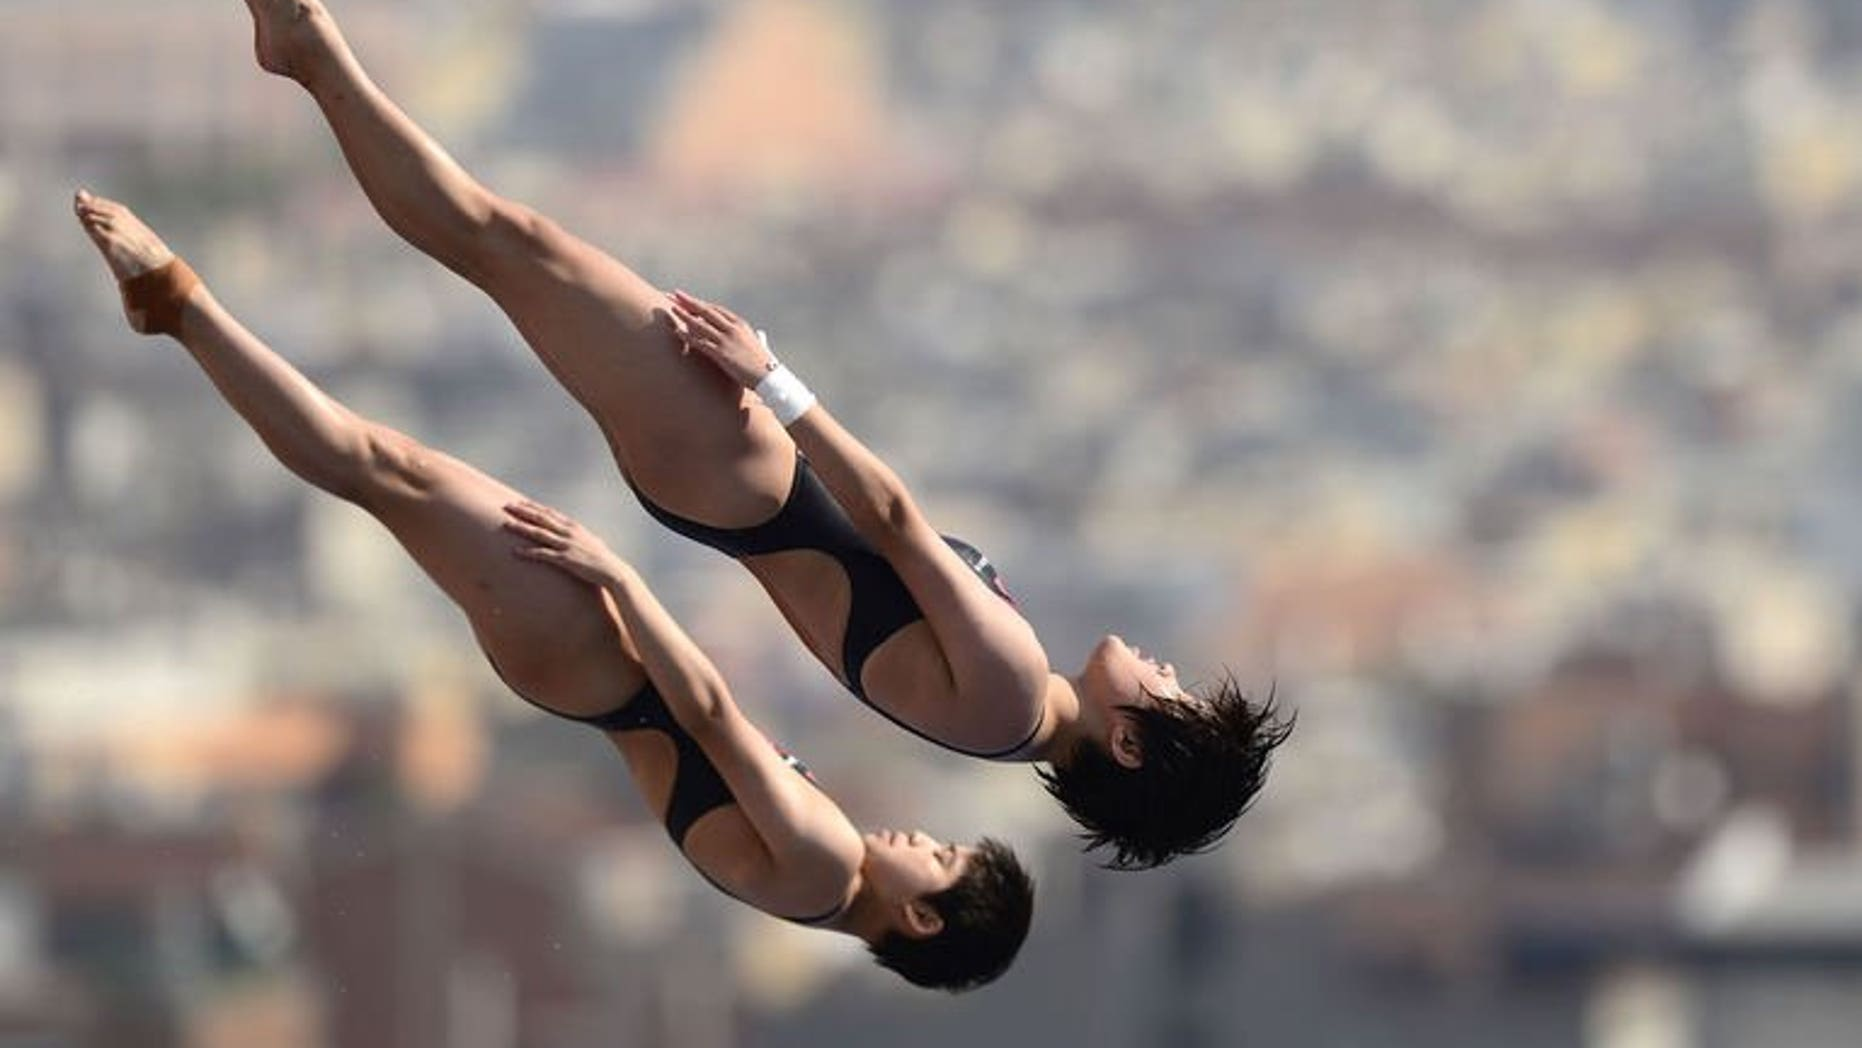 China's Liu Huixia and Chen Ruolin compete in the women's 10-metre synchro platform preliminary diving event in the FINA World Championships at the Piscina Municipal de Montjuic in Barcelona on July 22, 2013. The pair eased to victory in Monday's world championship final of the women's 10m synchronised platform in Barcelona.